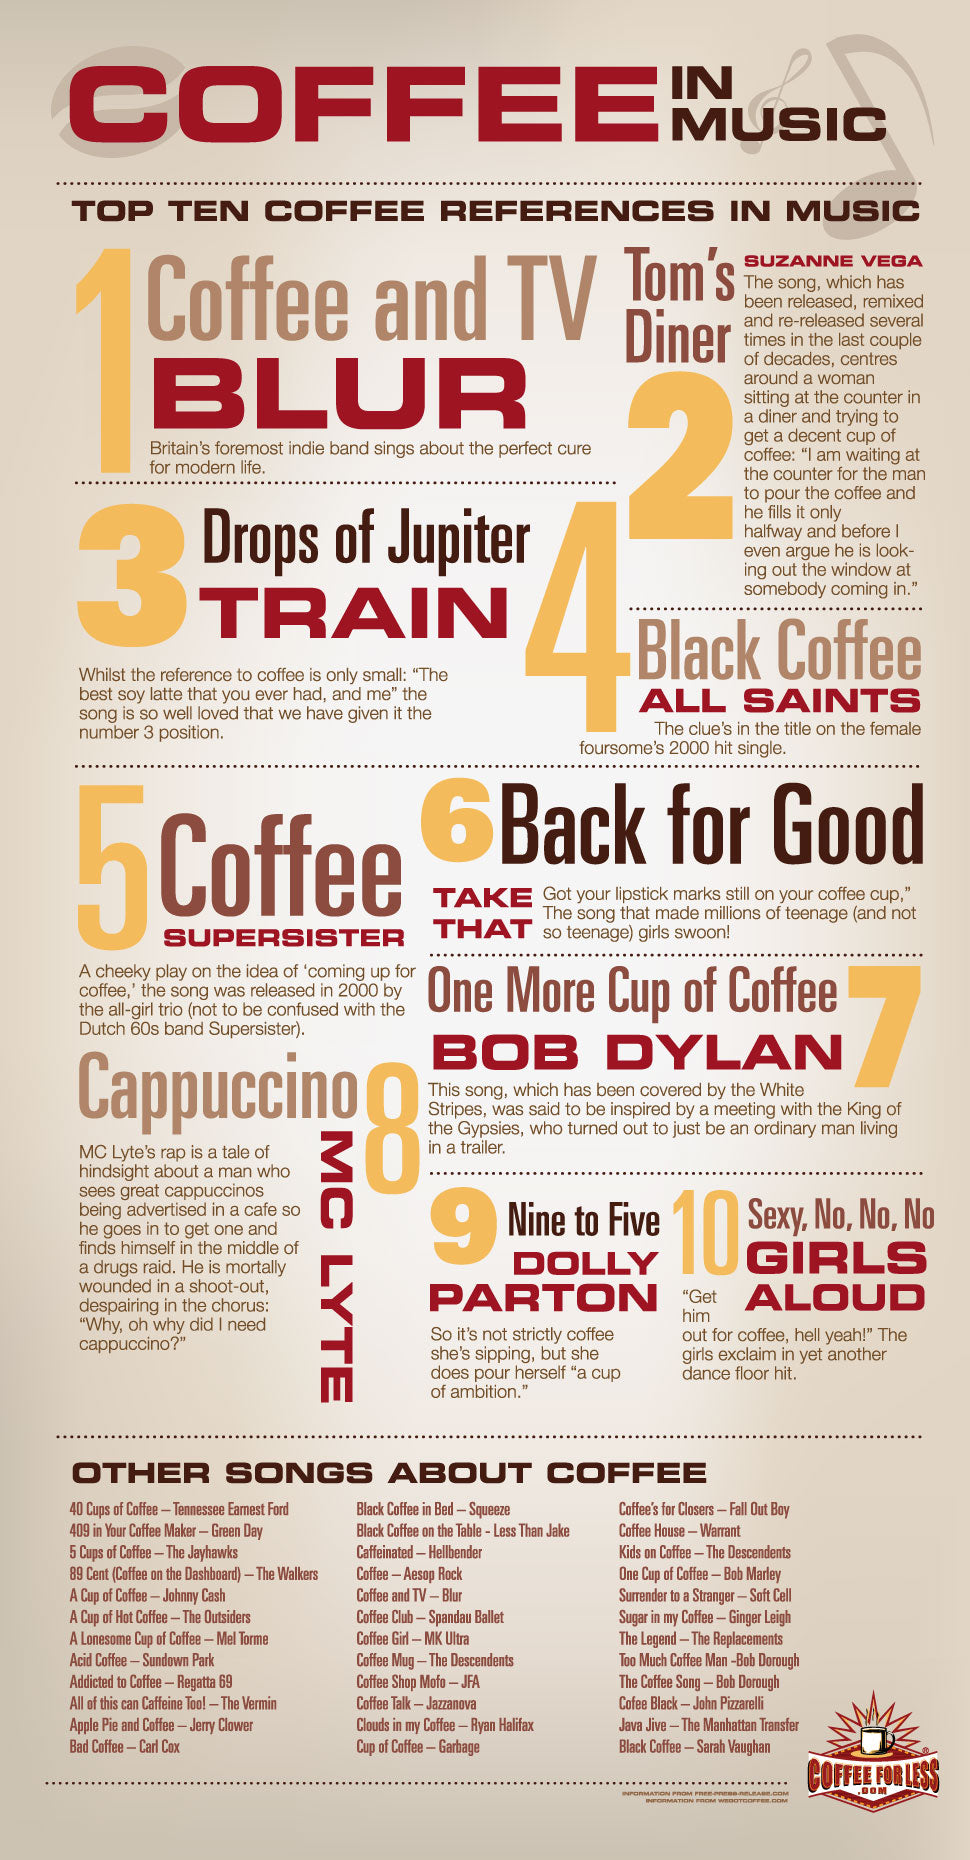 Coffee is everywhere these days, and music is no exception!